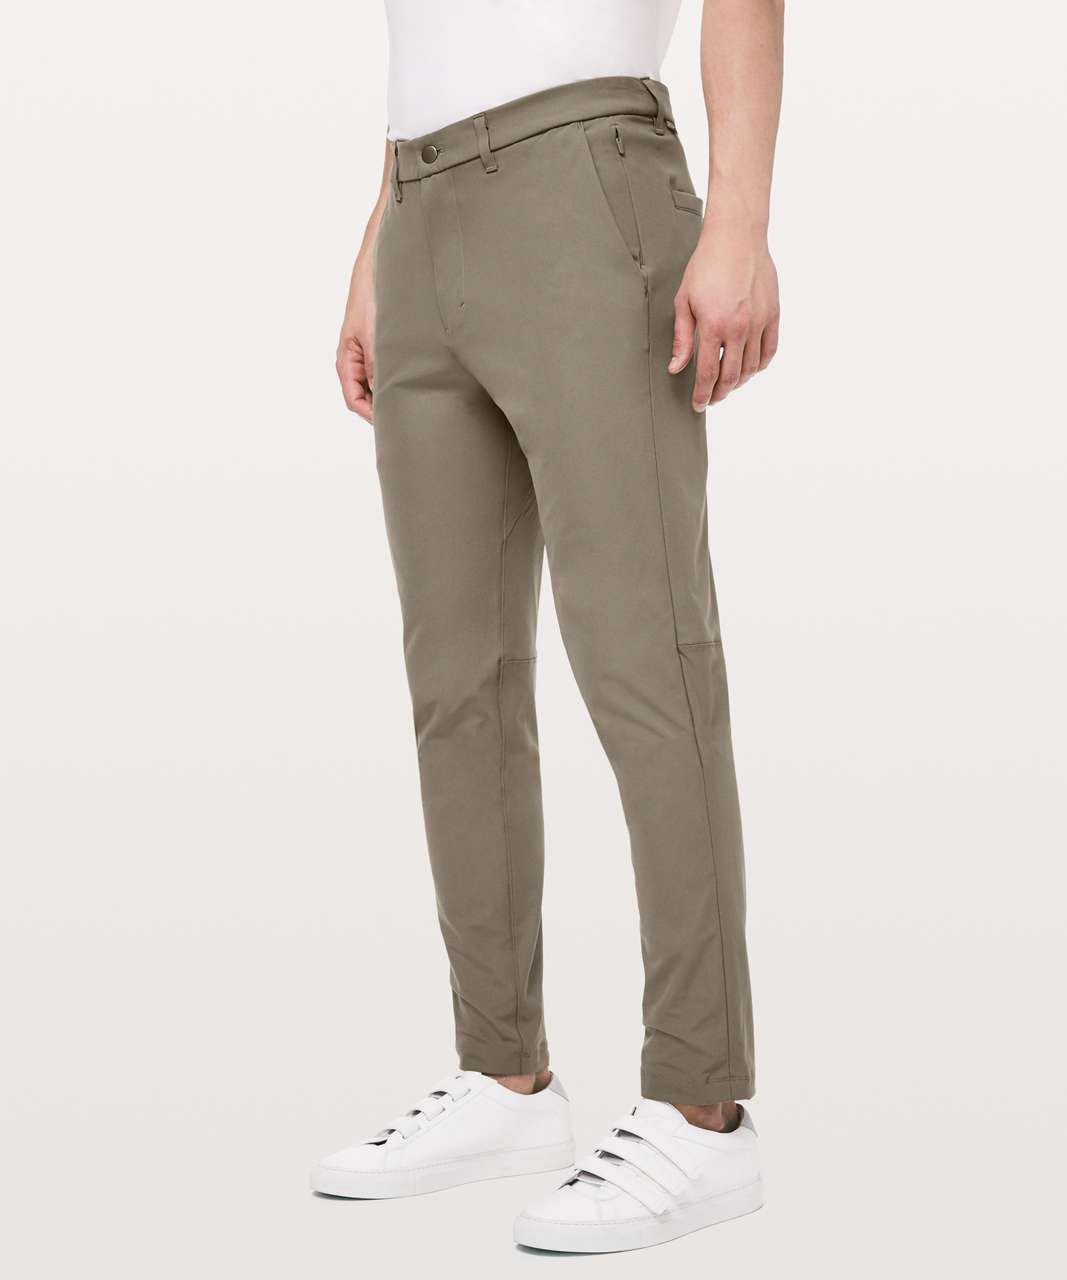 "Lululemon Commission Pant Slim *Warpstreme 34"" - Nomad"